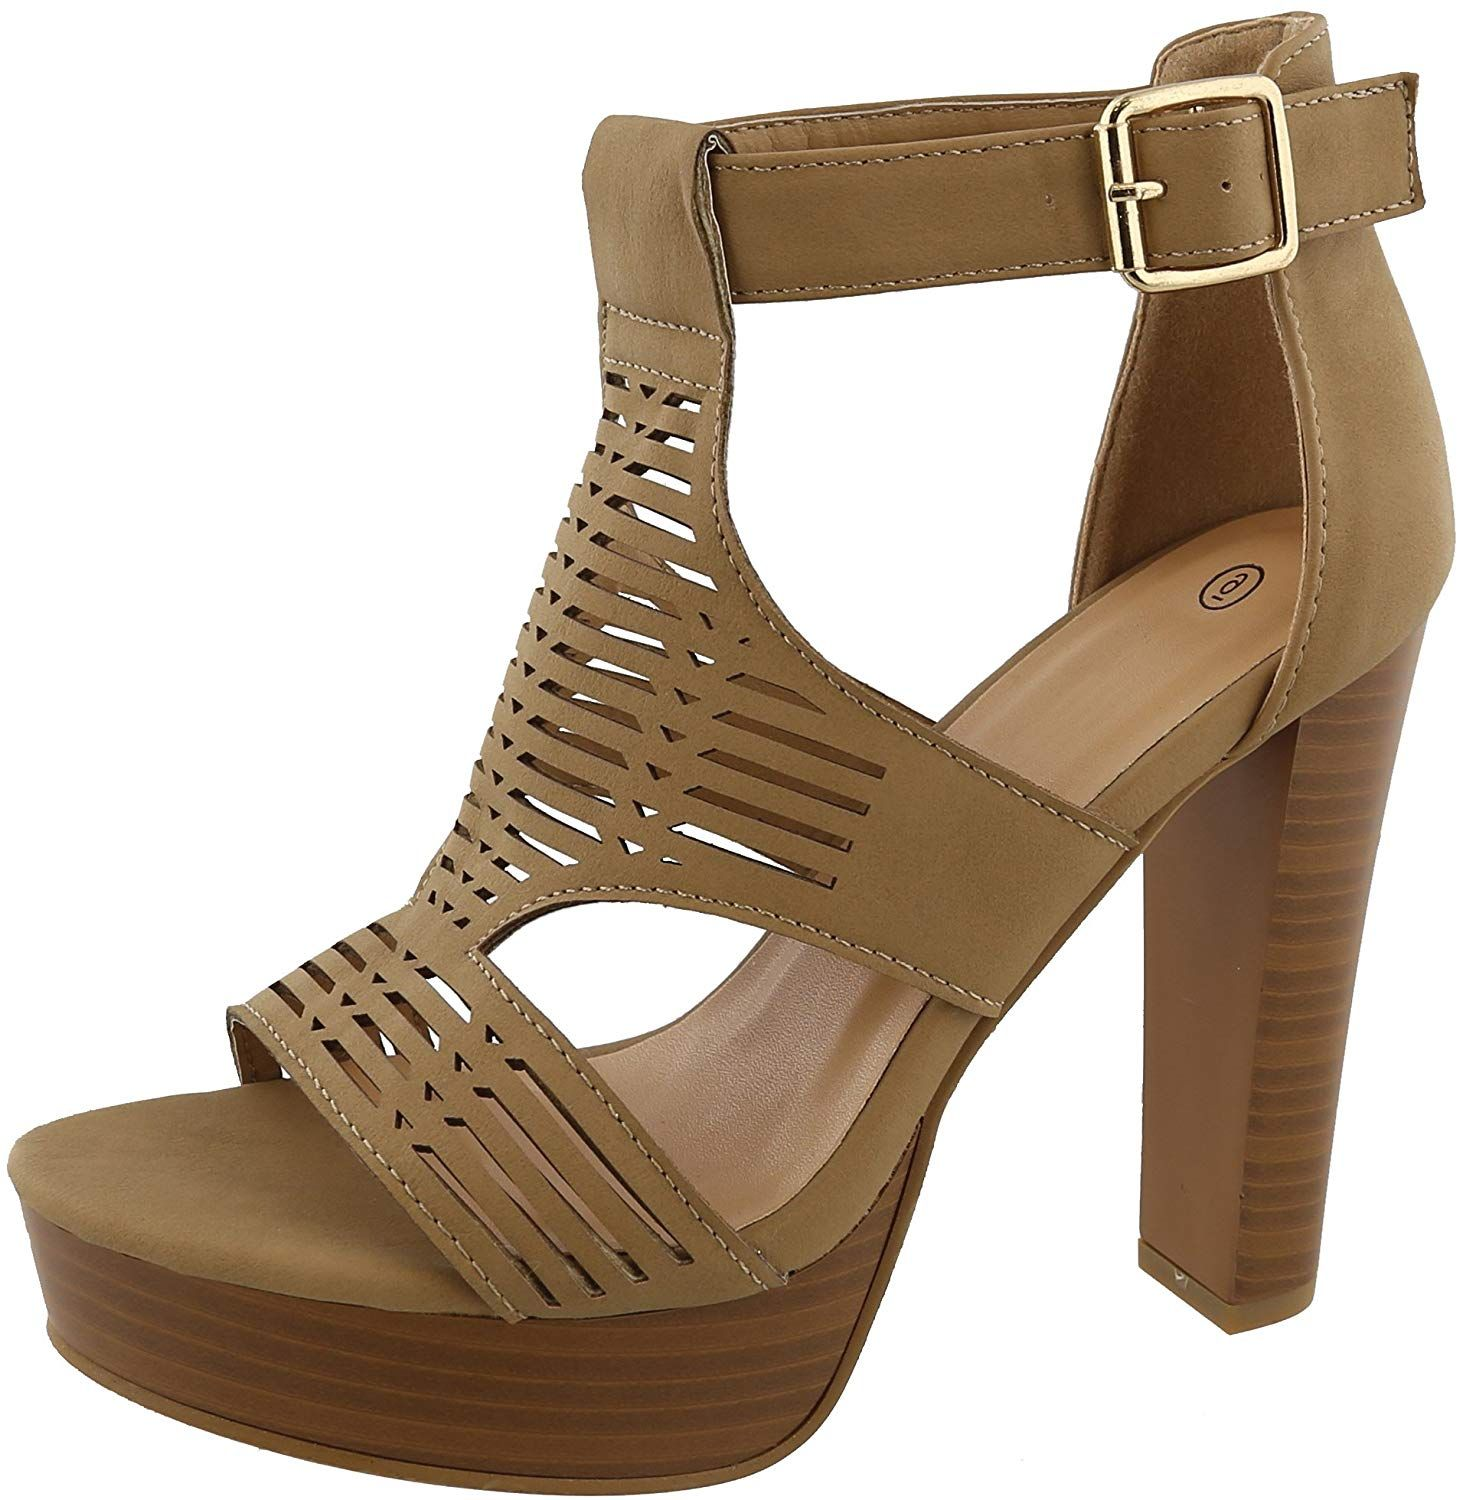 44aa0f21a6de3 Cambridge Select Women's Caged Laser Cutout Open Toe Buckled Ankle ...